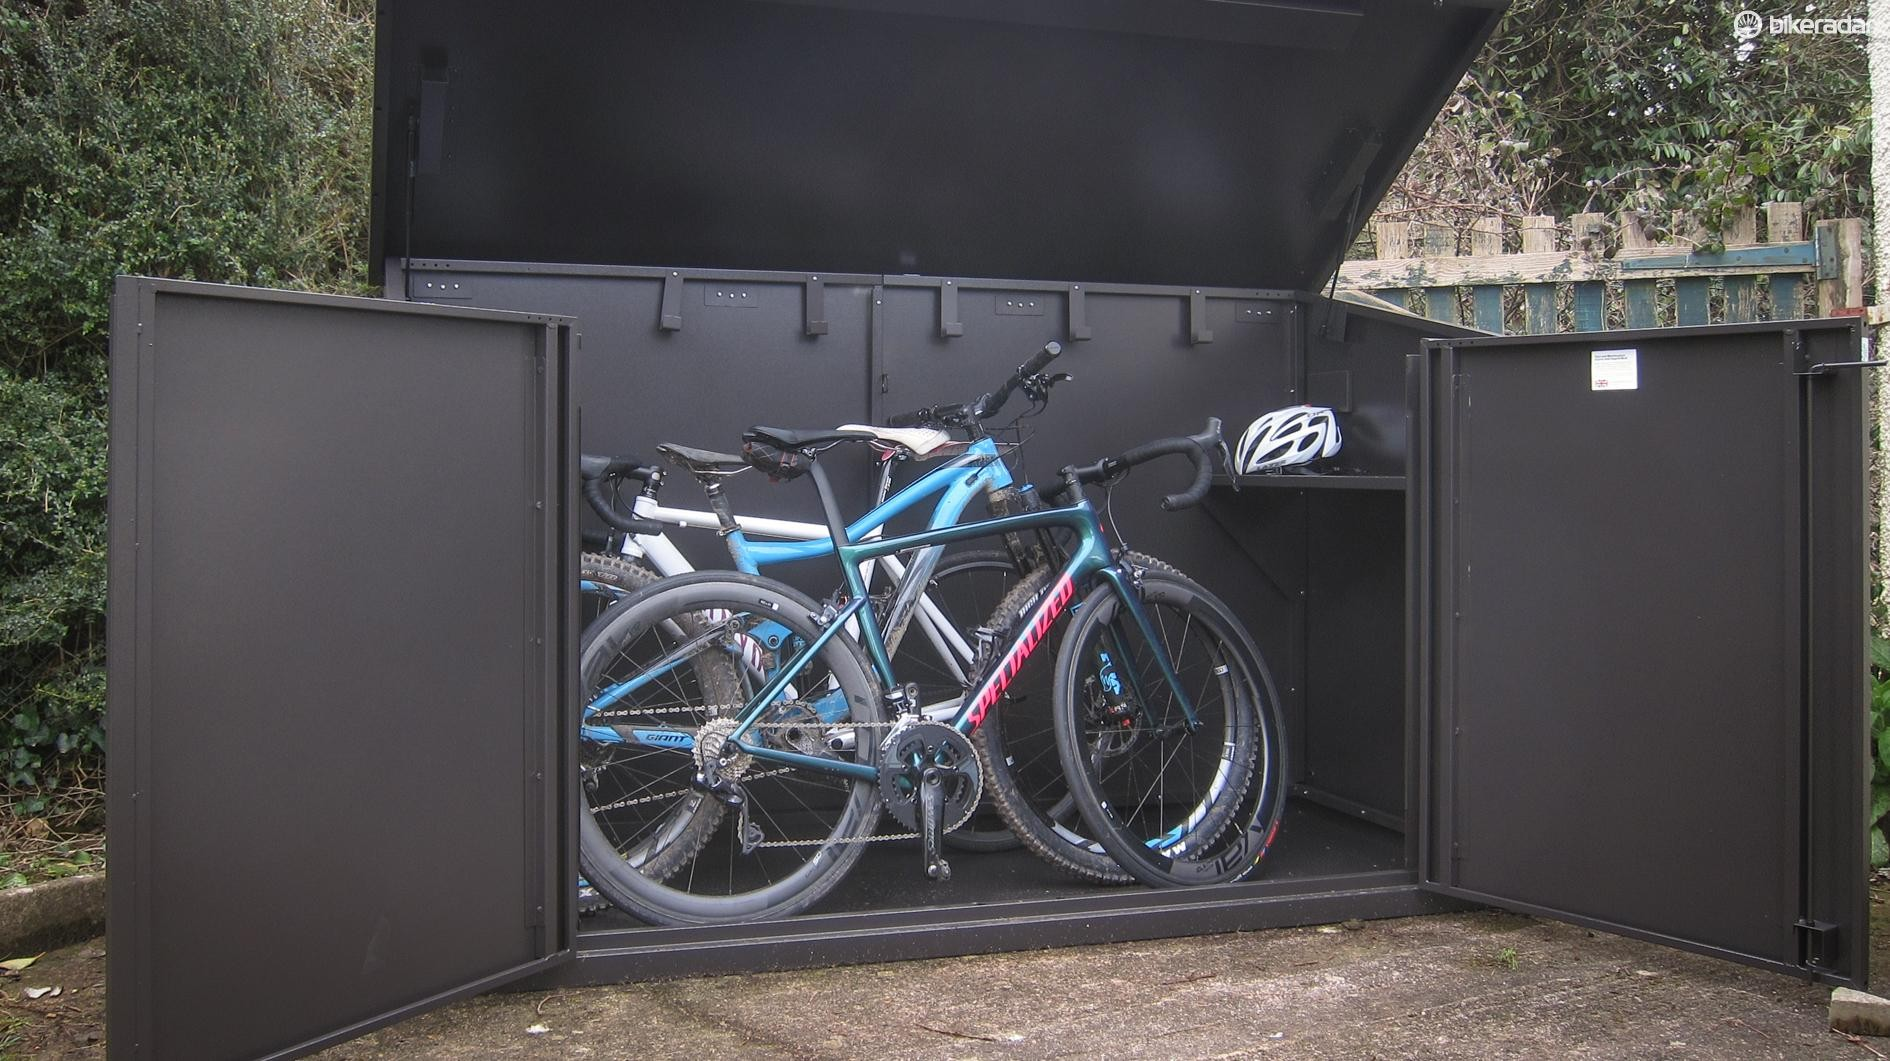 The Asgard Access E Plus has a huge capacity and the option to add power